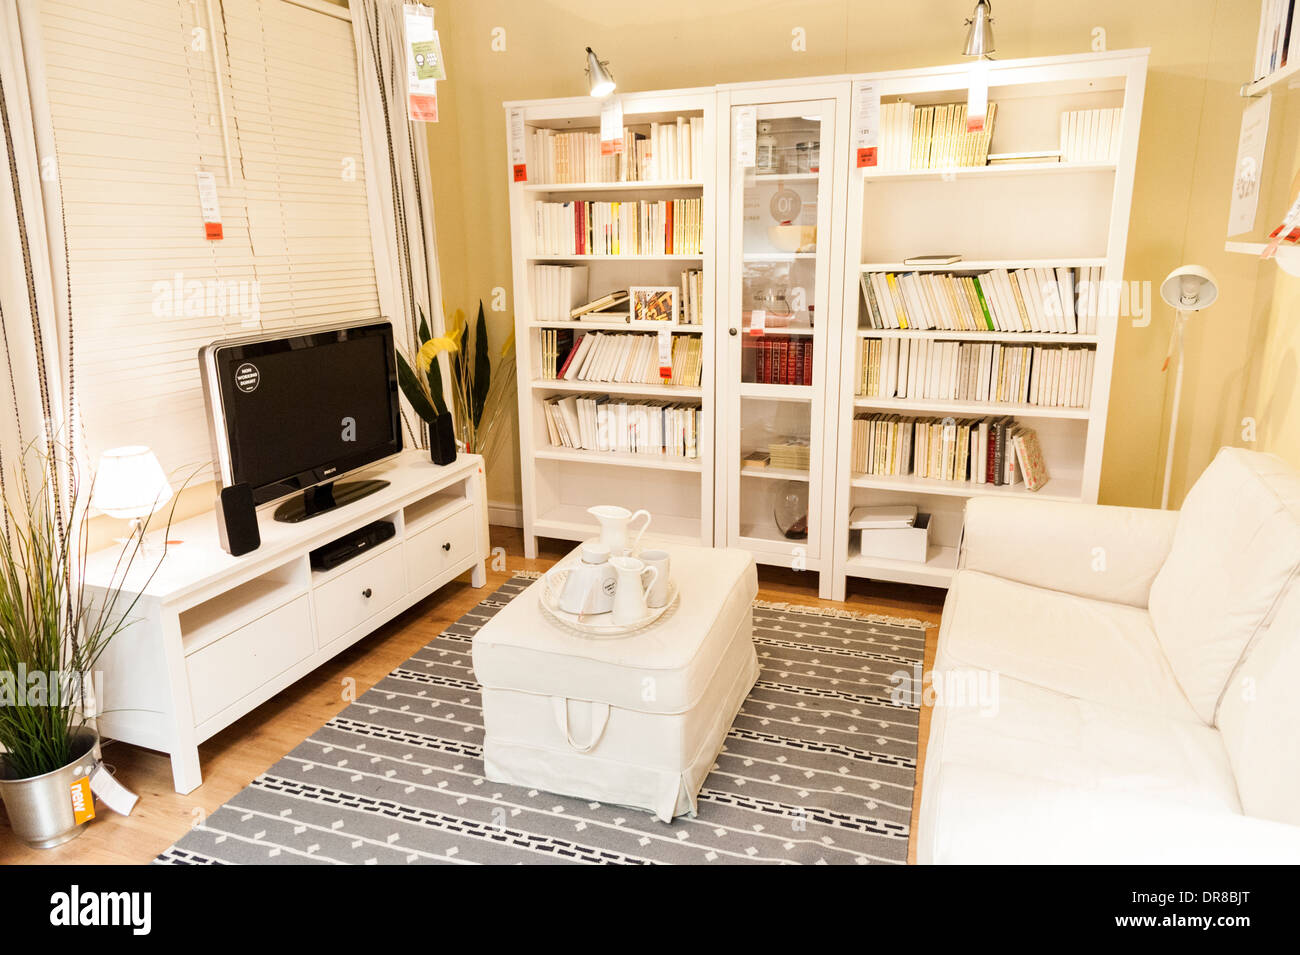 living room furniture in ikea, london, england, uk stock photo